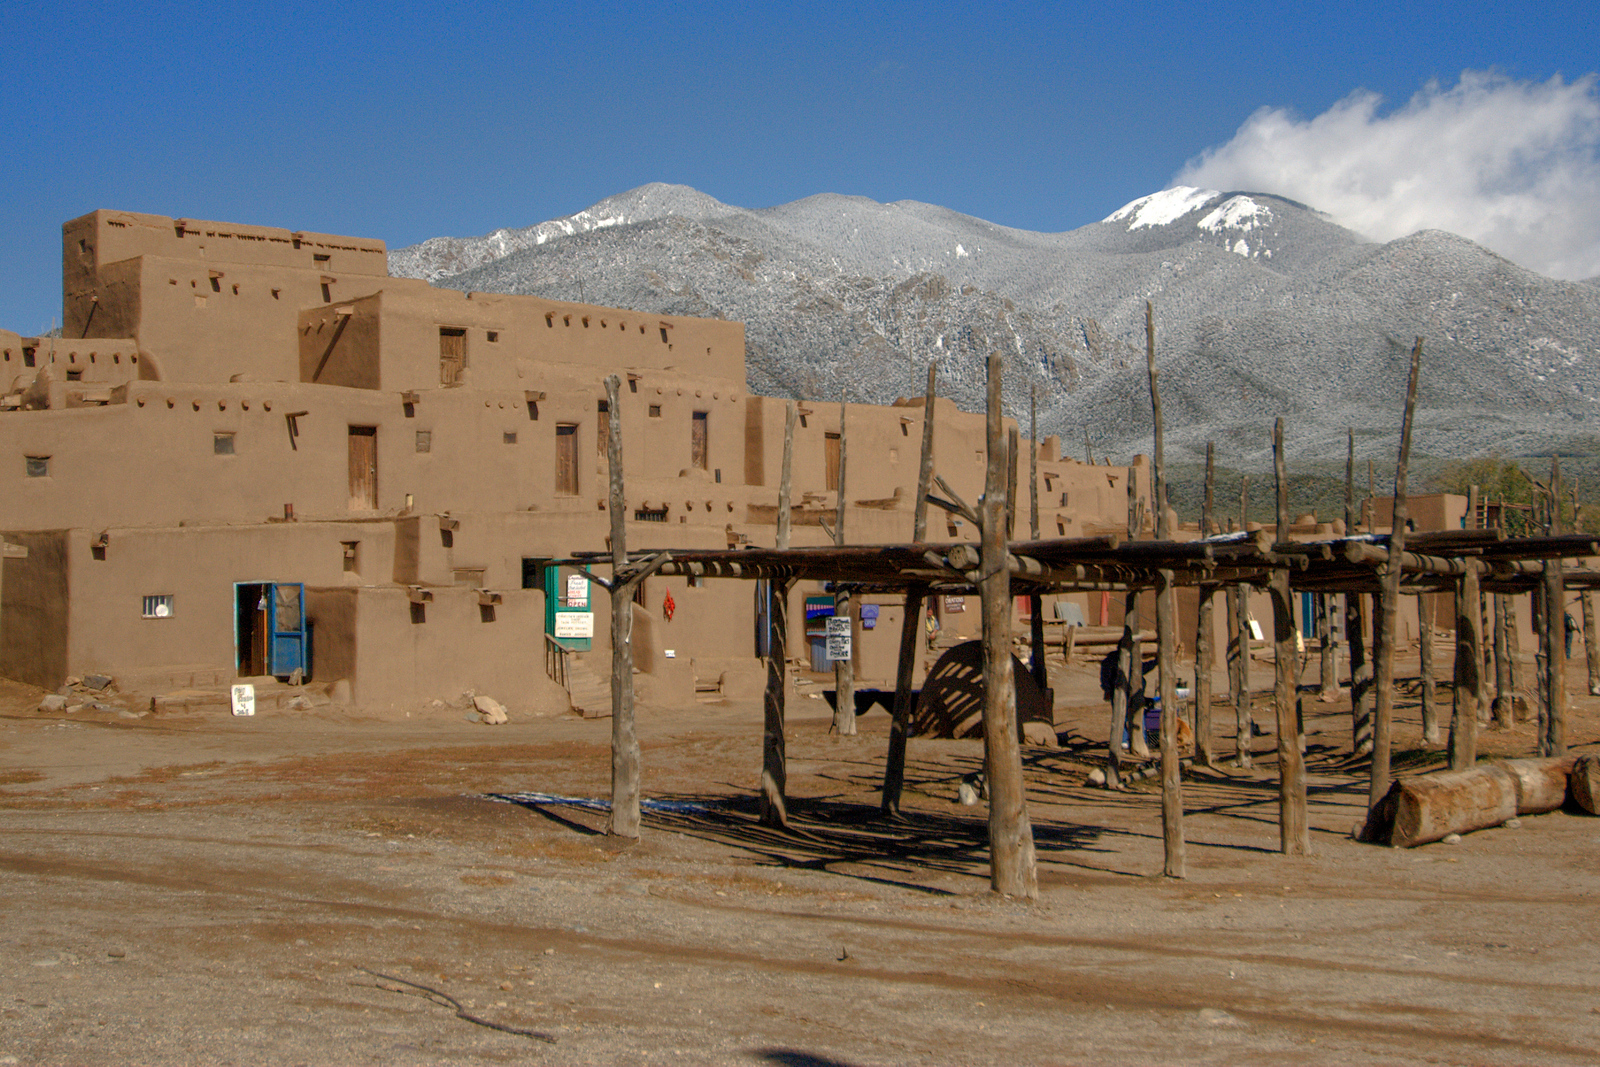 Taos Pueblo UNESCO World Heritage Site, New Mexico